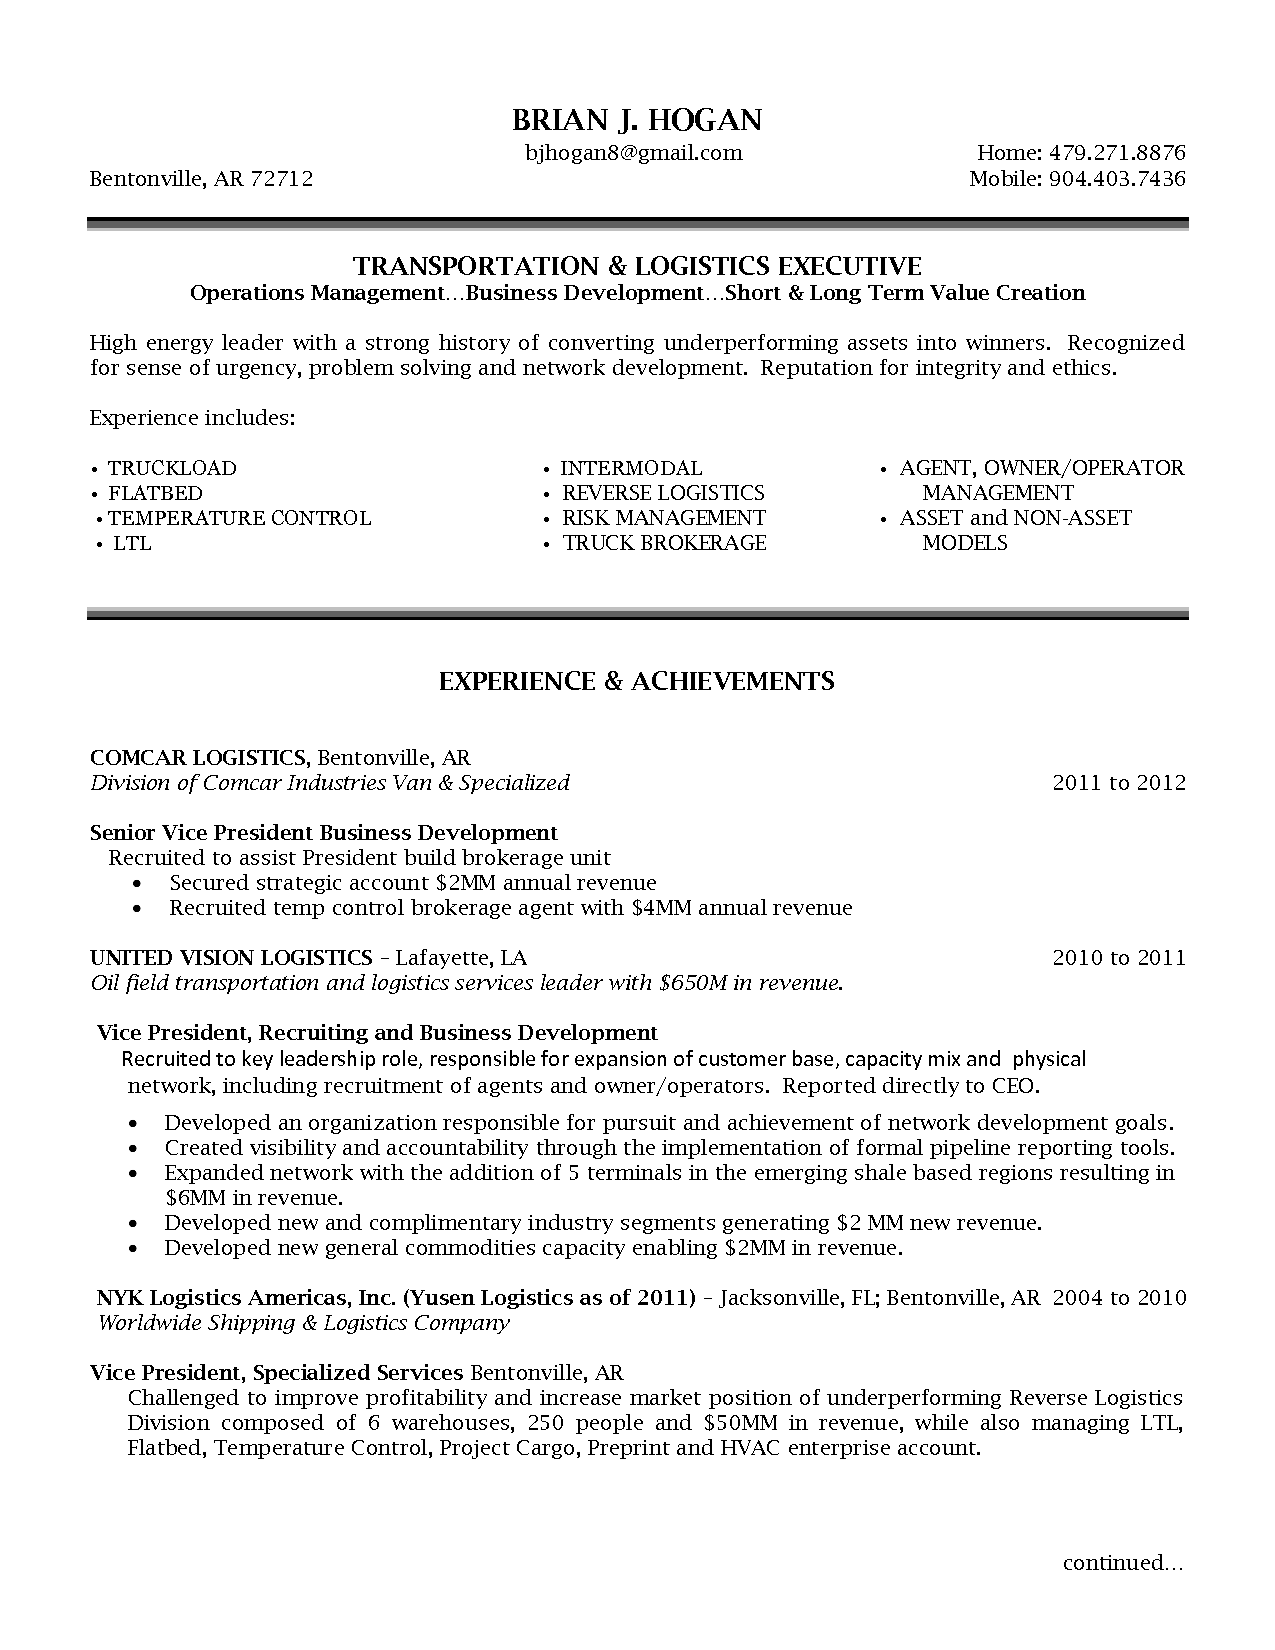 senior logistic management resume | VP Director Operations Logistics ...